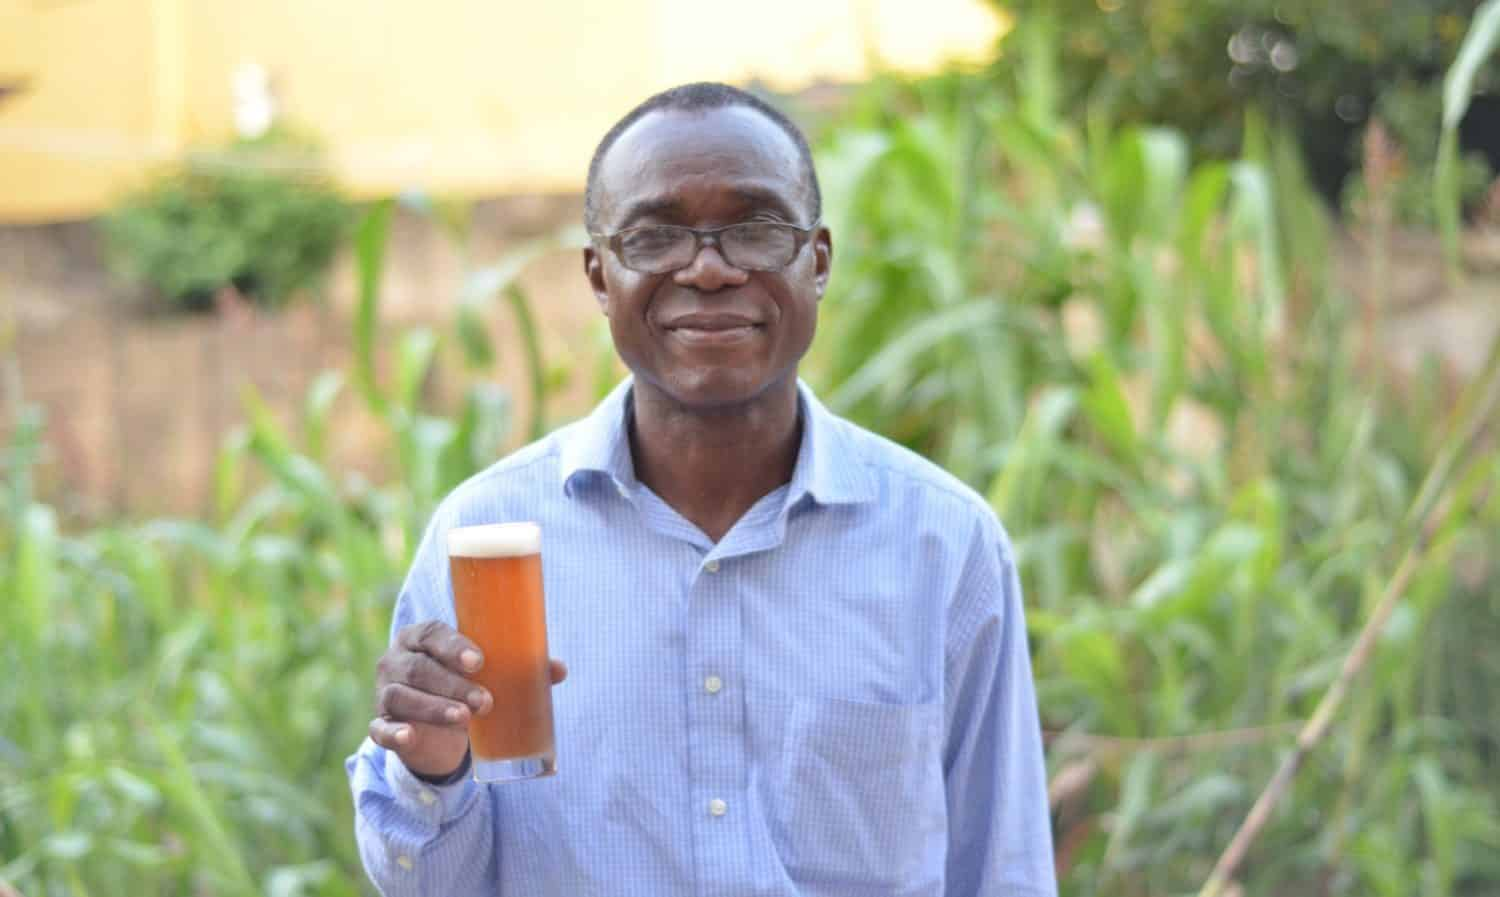 Sick of the commercial beers? In Ghana sorghum, sugarcane, and cashew apples are giving Ghanaian drinkers alternatives to imports.